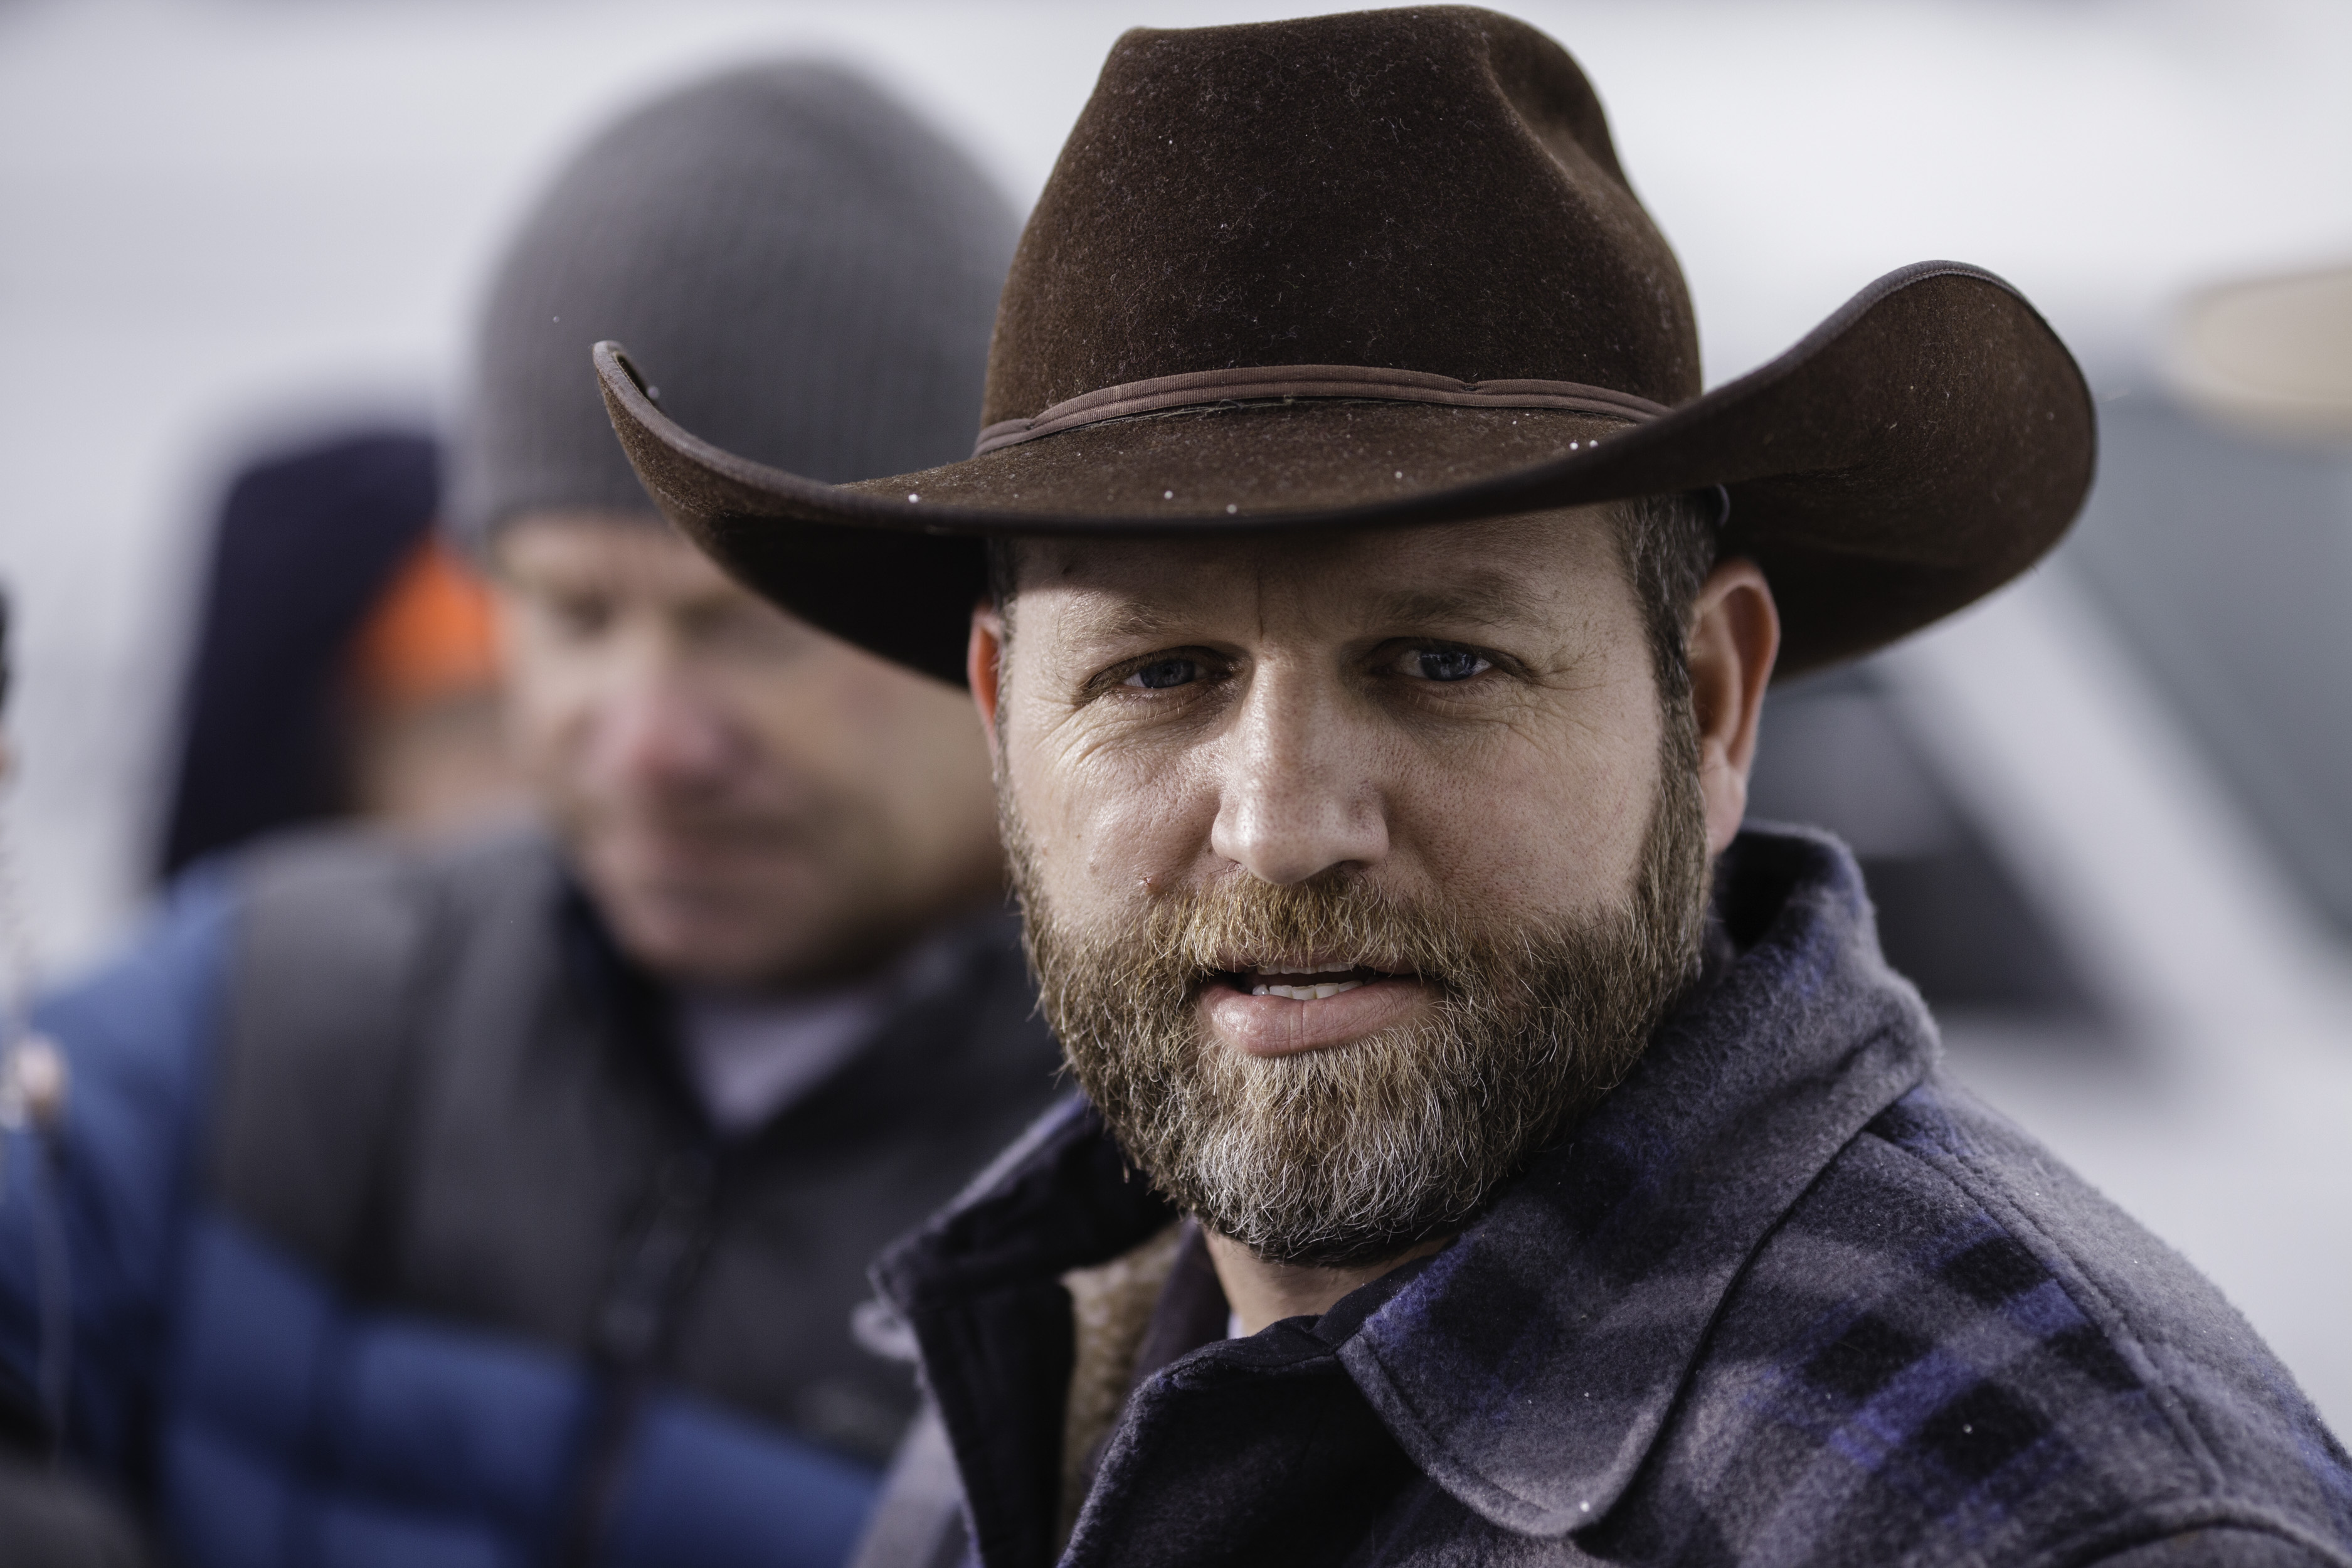 Ammon Bundy speaks at a news conference at the entrance to the Malheur National Wildlife Refuge Headquarters near Burns, Oregon January 5, 2016.